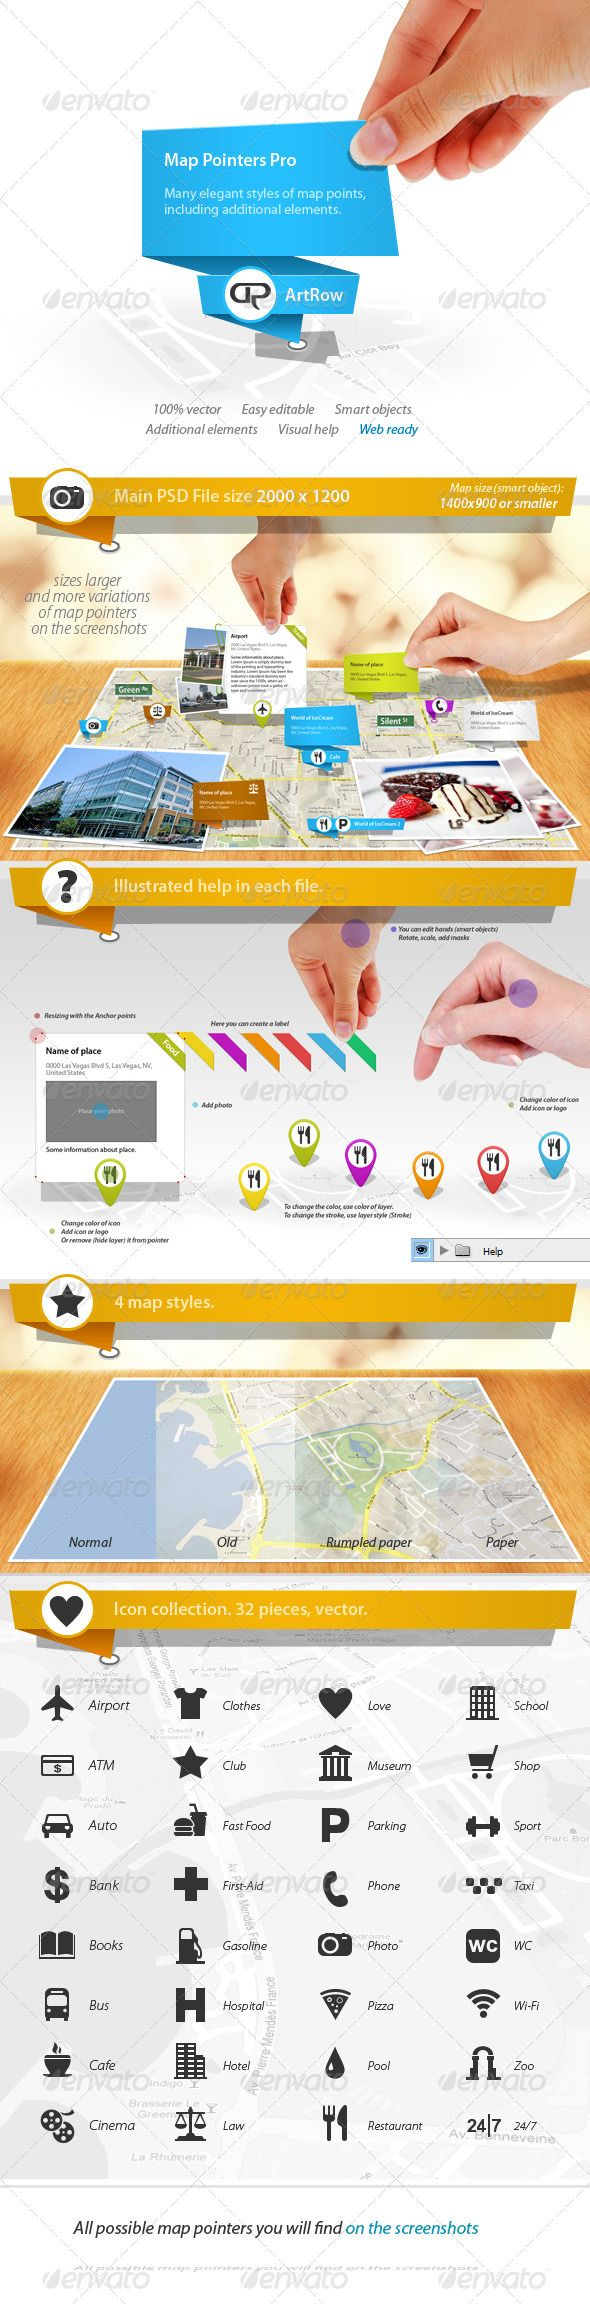 Map Pointers Pro - GraphicRiver Item for Sale